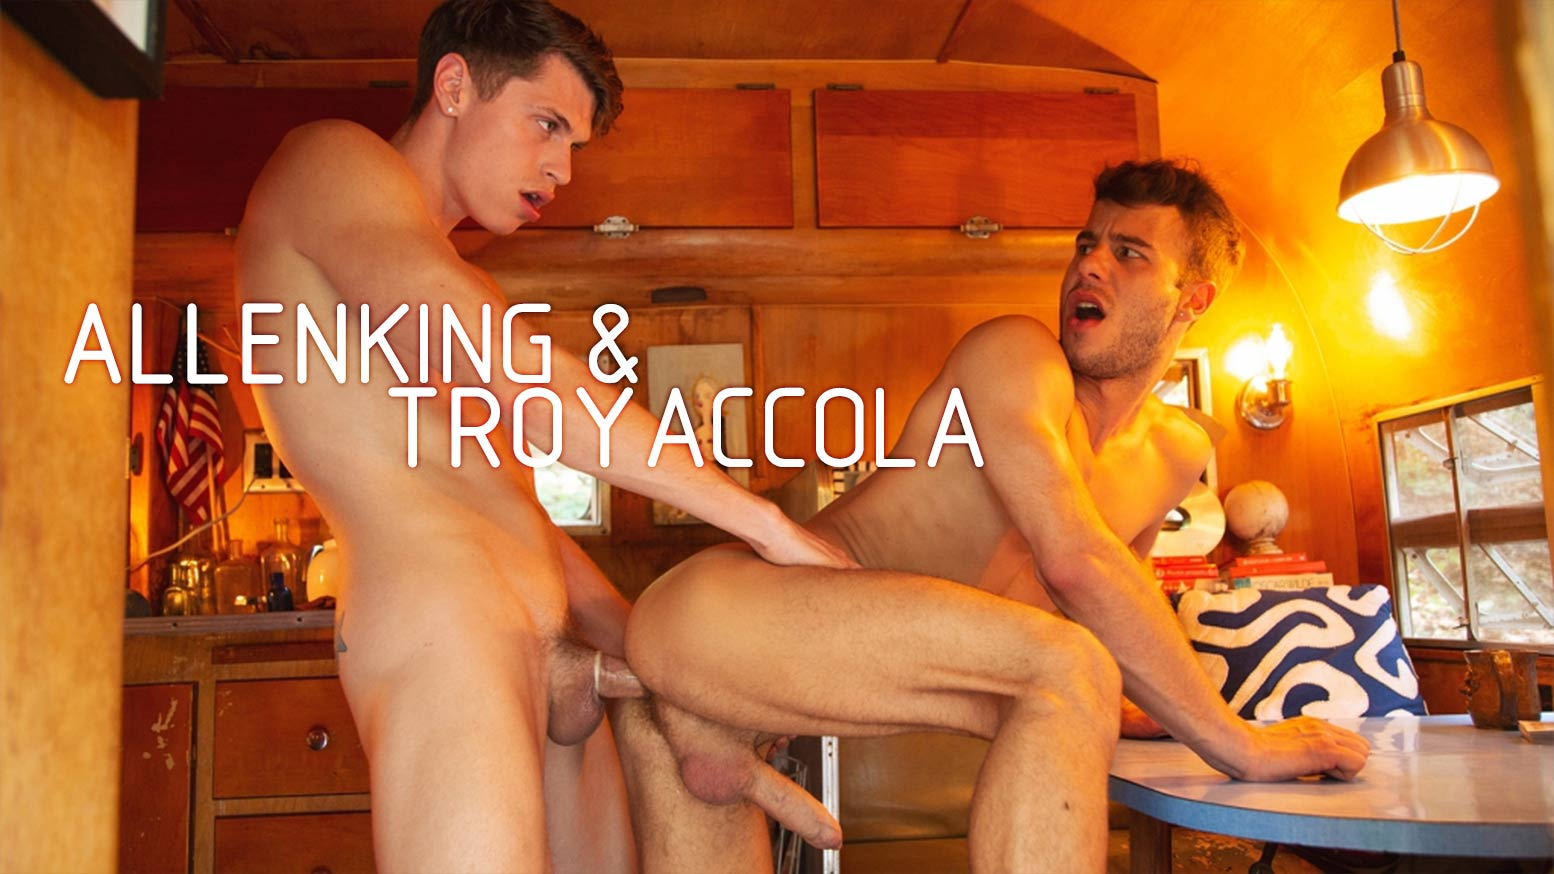 Allen King Porno Gay it's summer at cockyboys: allen king and troy accola flip